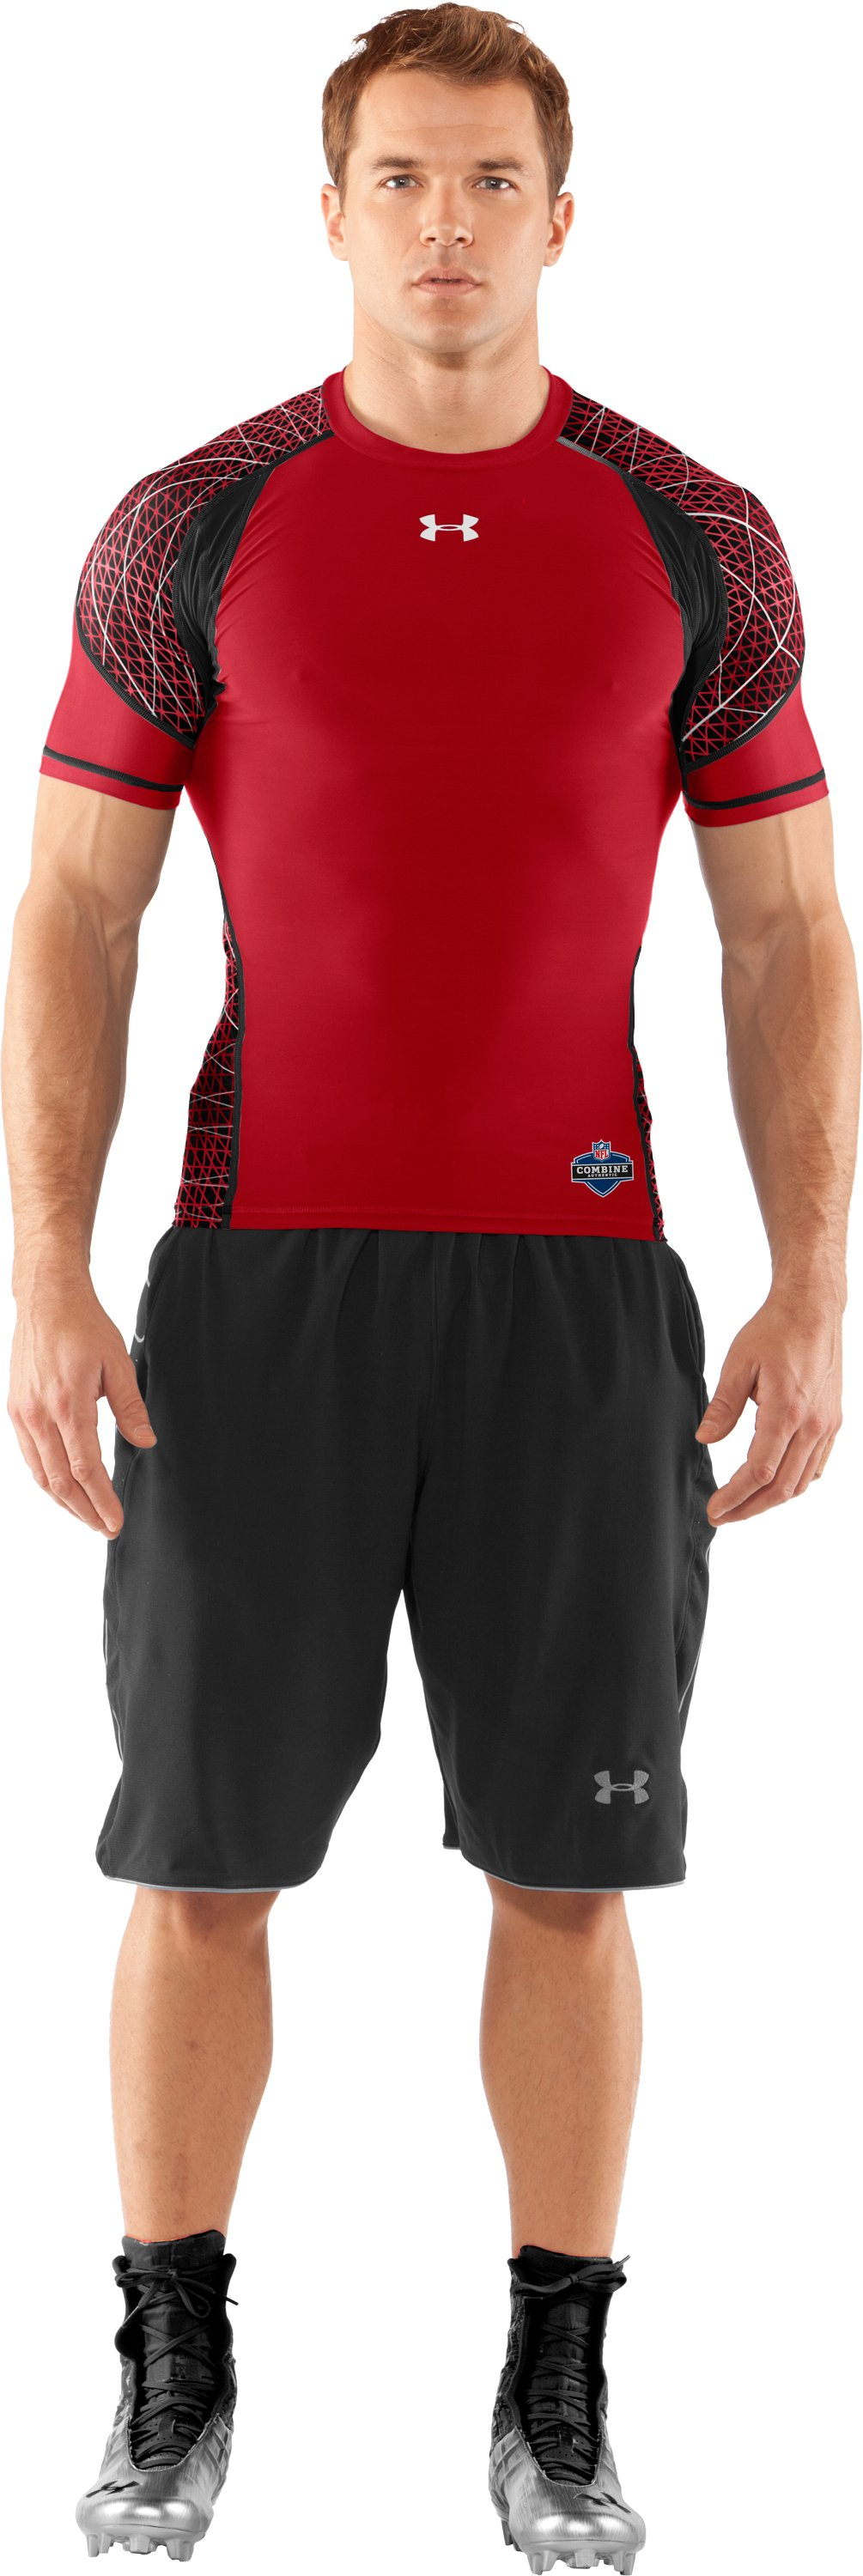 Men's NFL Combine Authentic Warp Speed Short Sleeve, Red